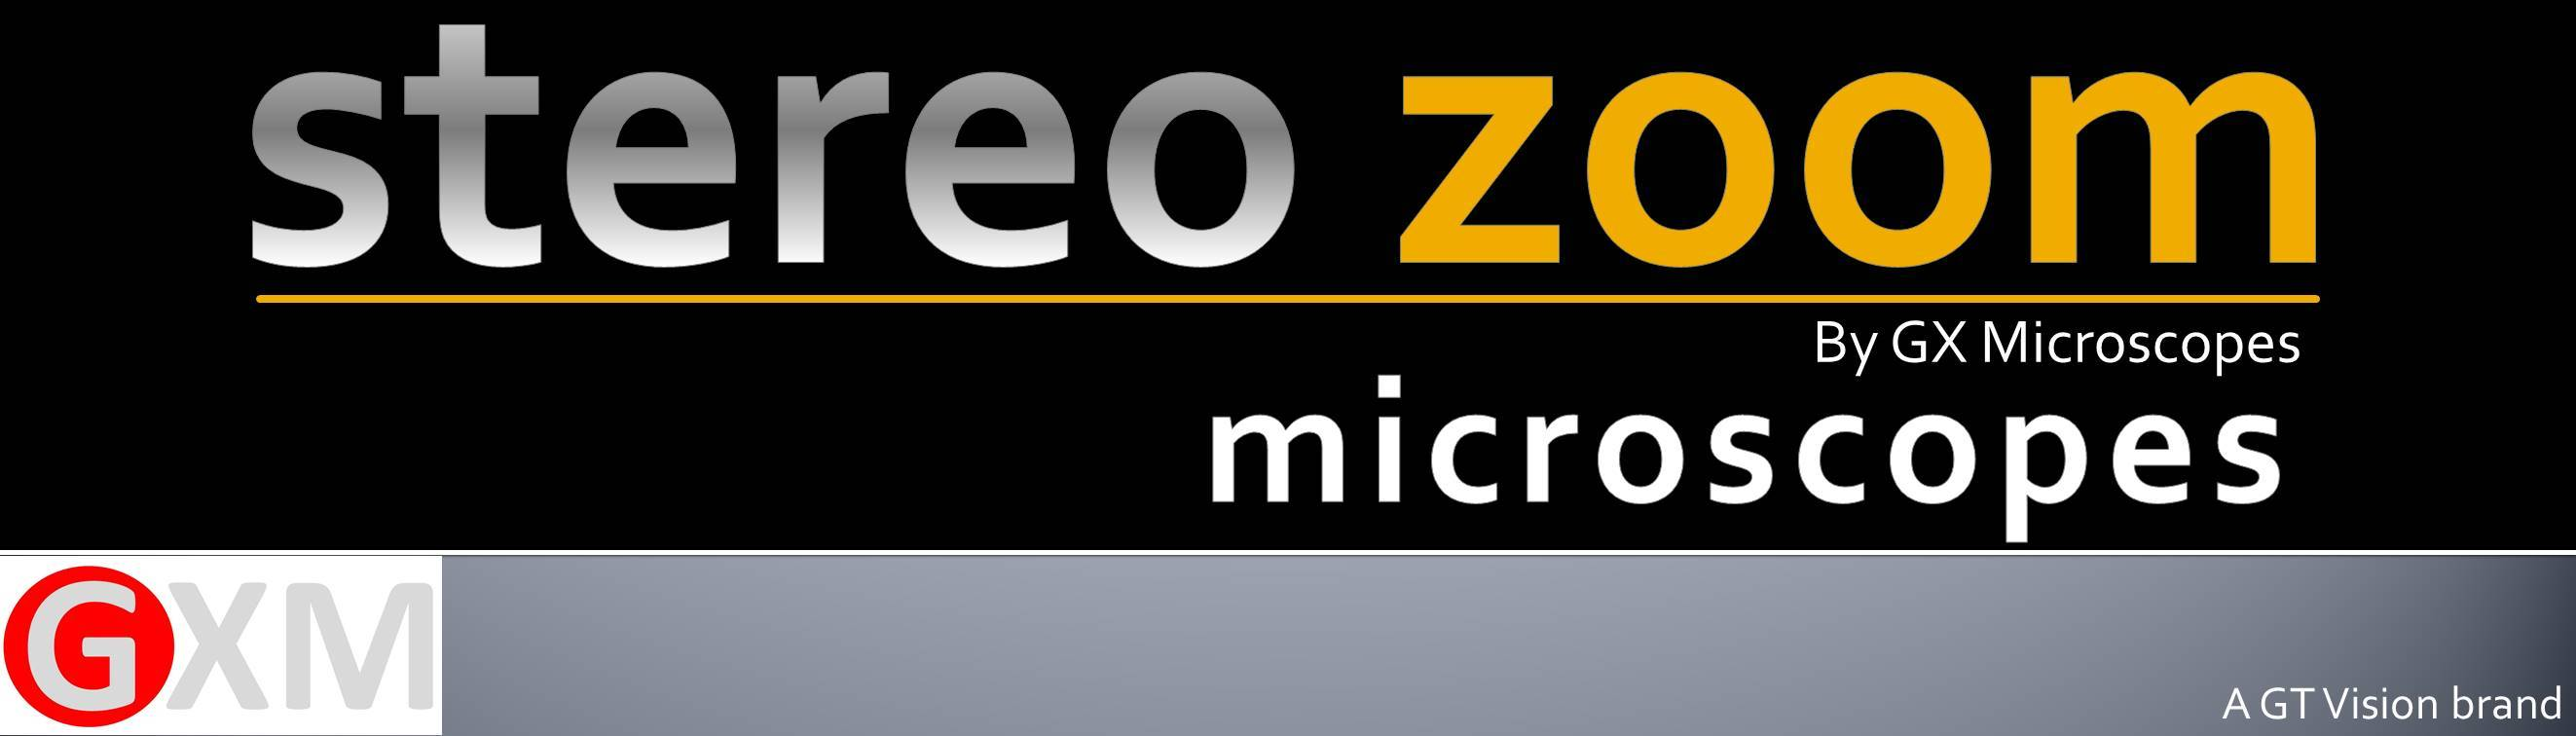 Stereo_Zoom_Microscopes_Banner_GX_Microscopes